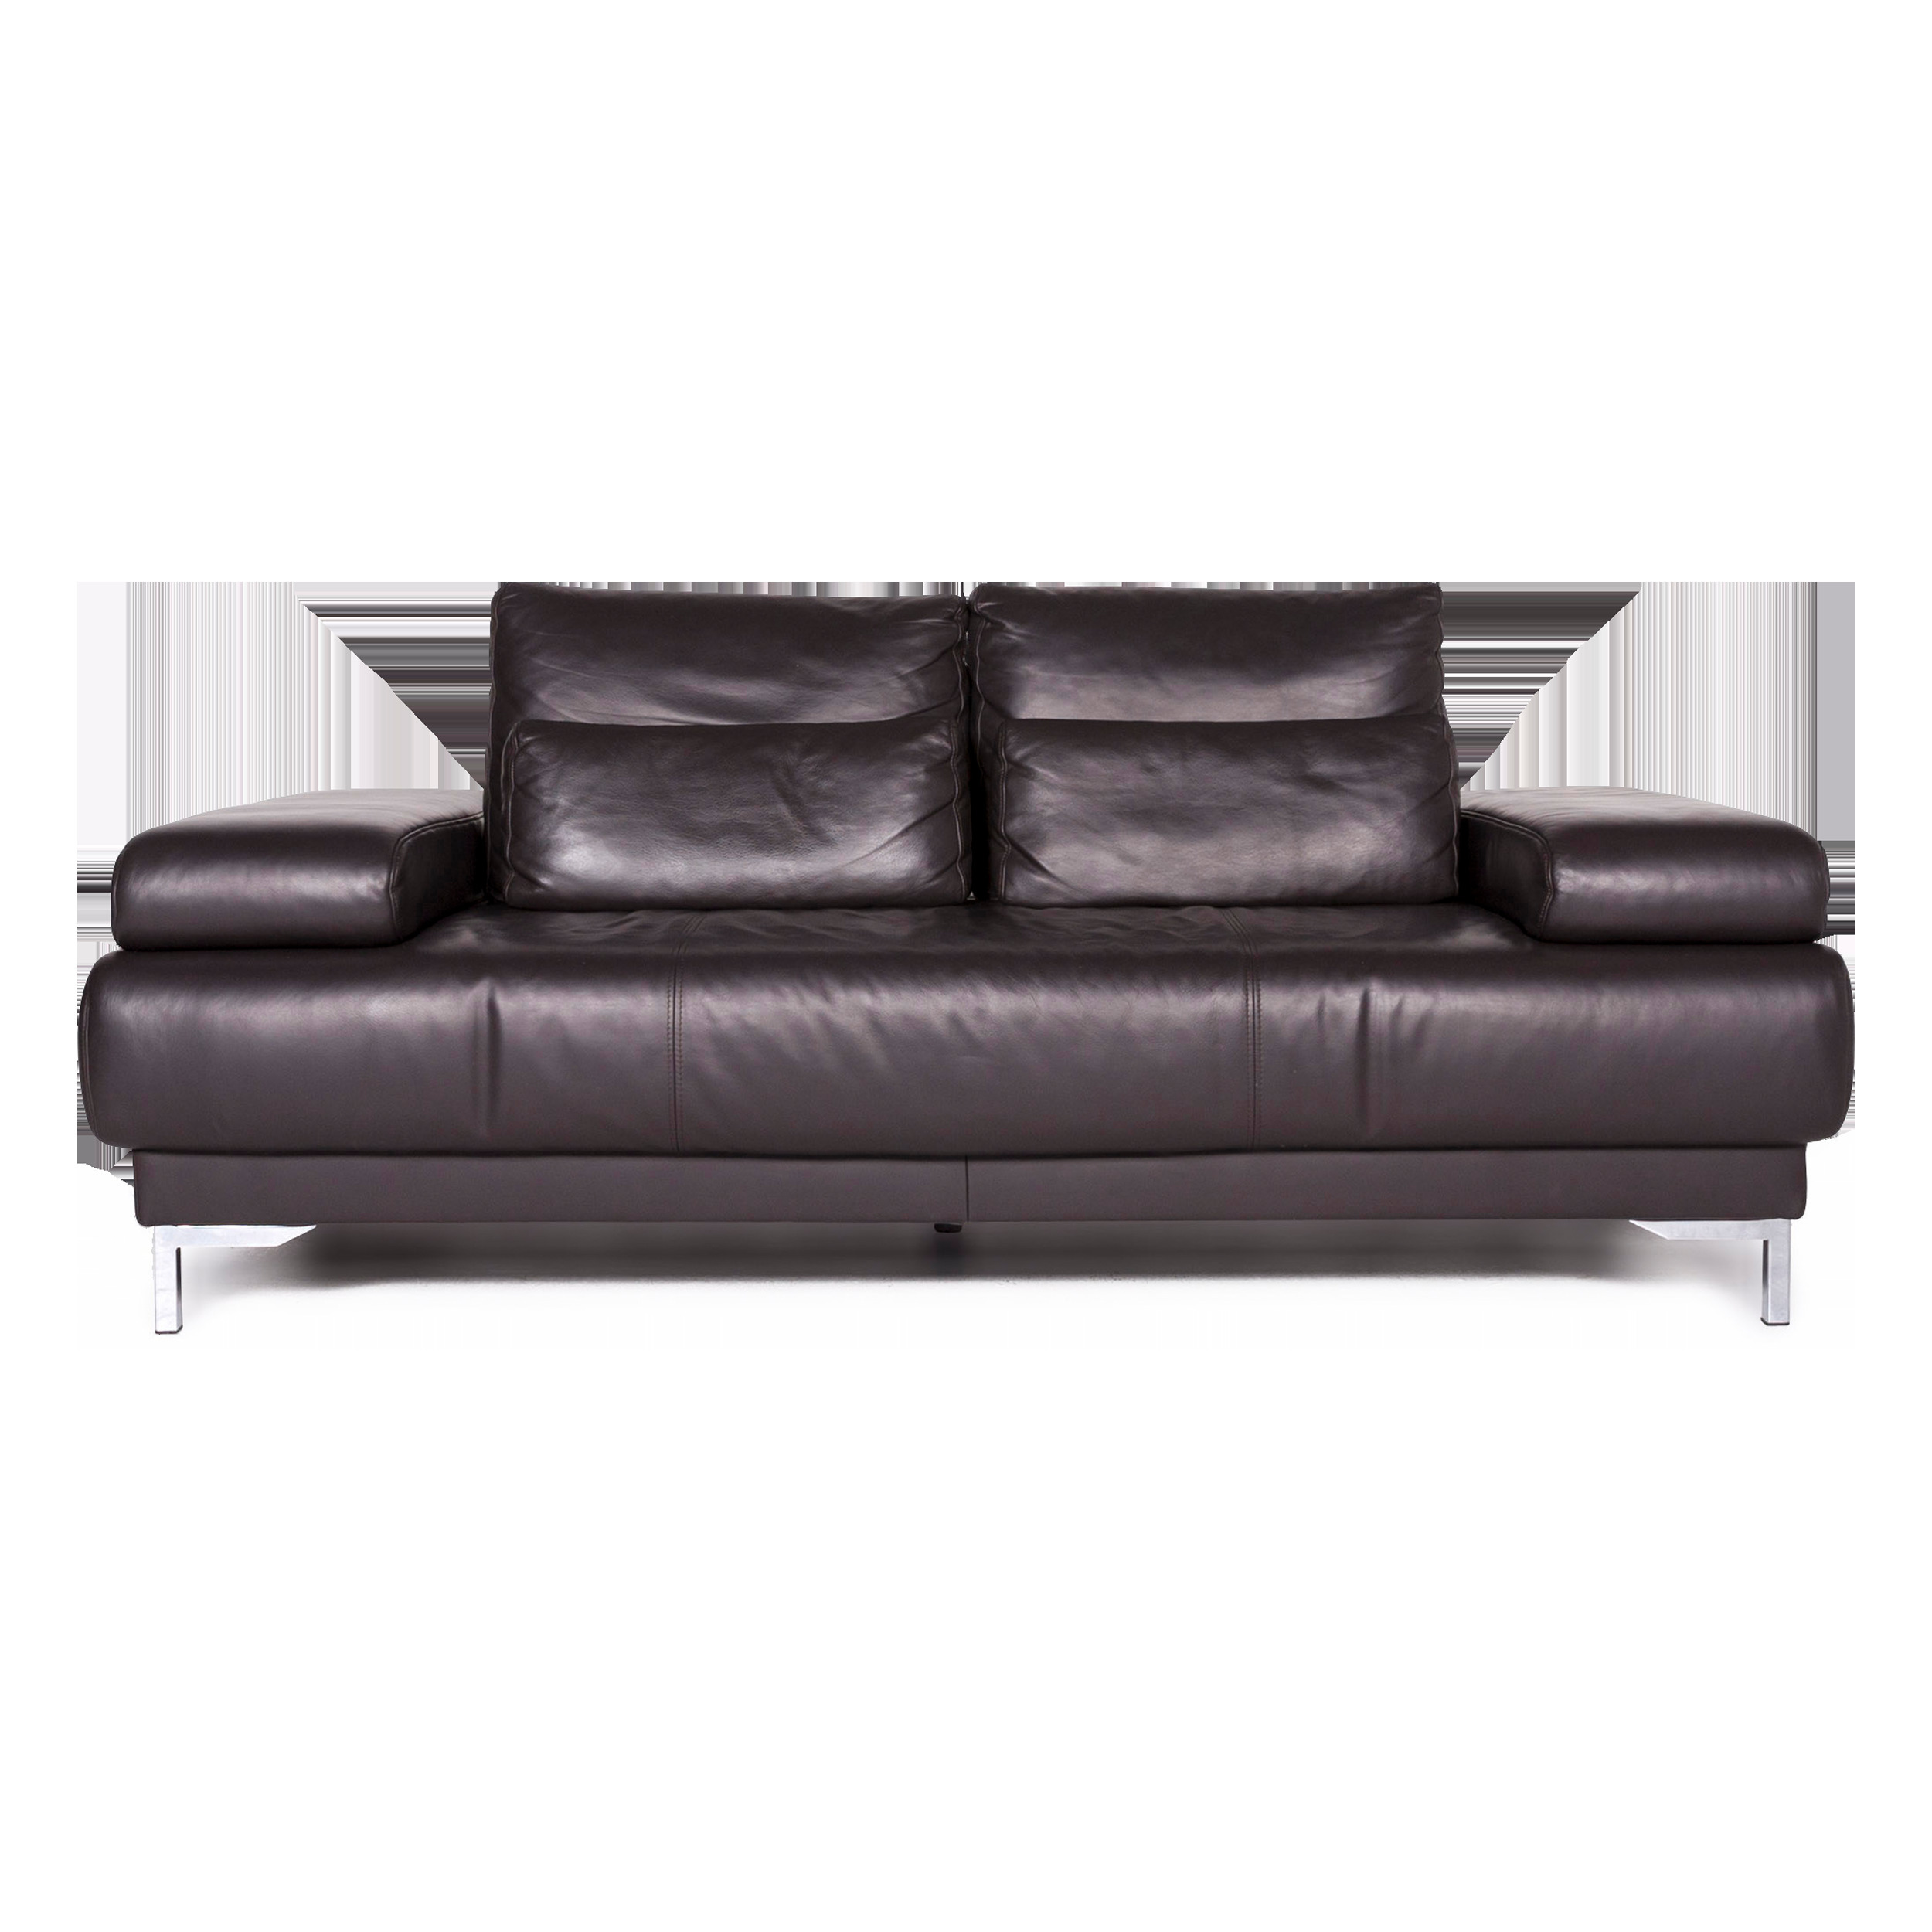 Ewald Schillig Designer Sofa Ewald Schillig Harry Designer Leather Sofa Brown Two Seater Function Couch 8881